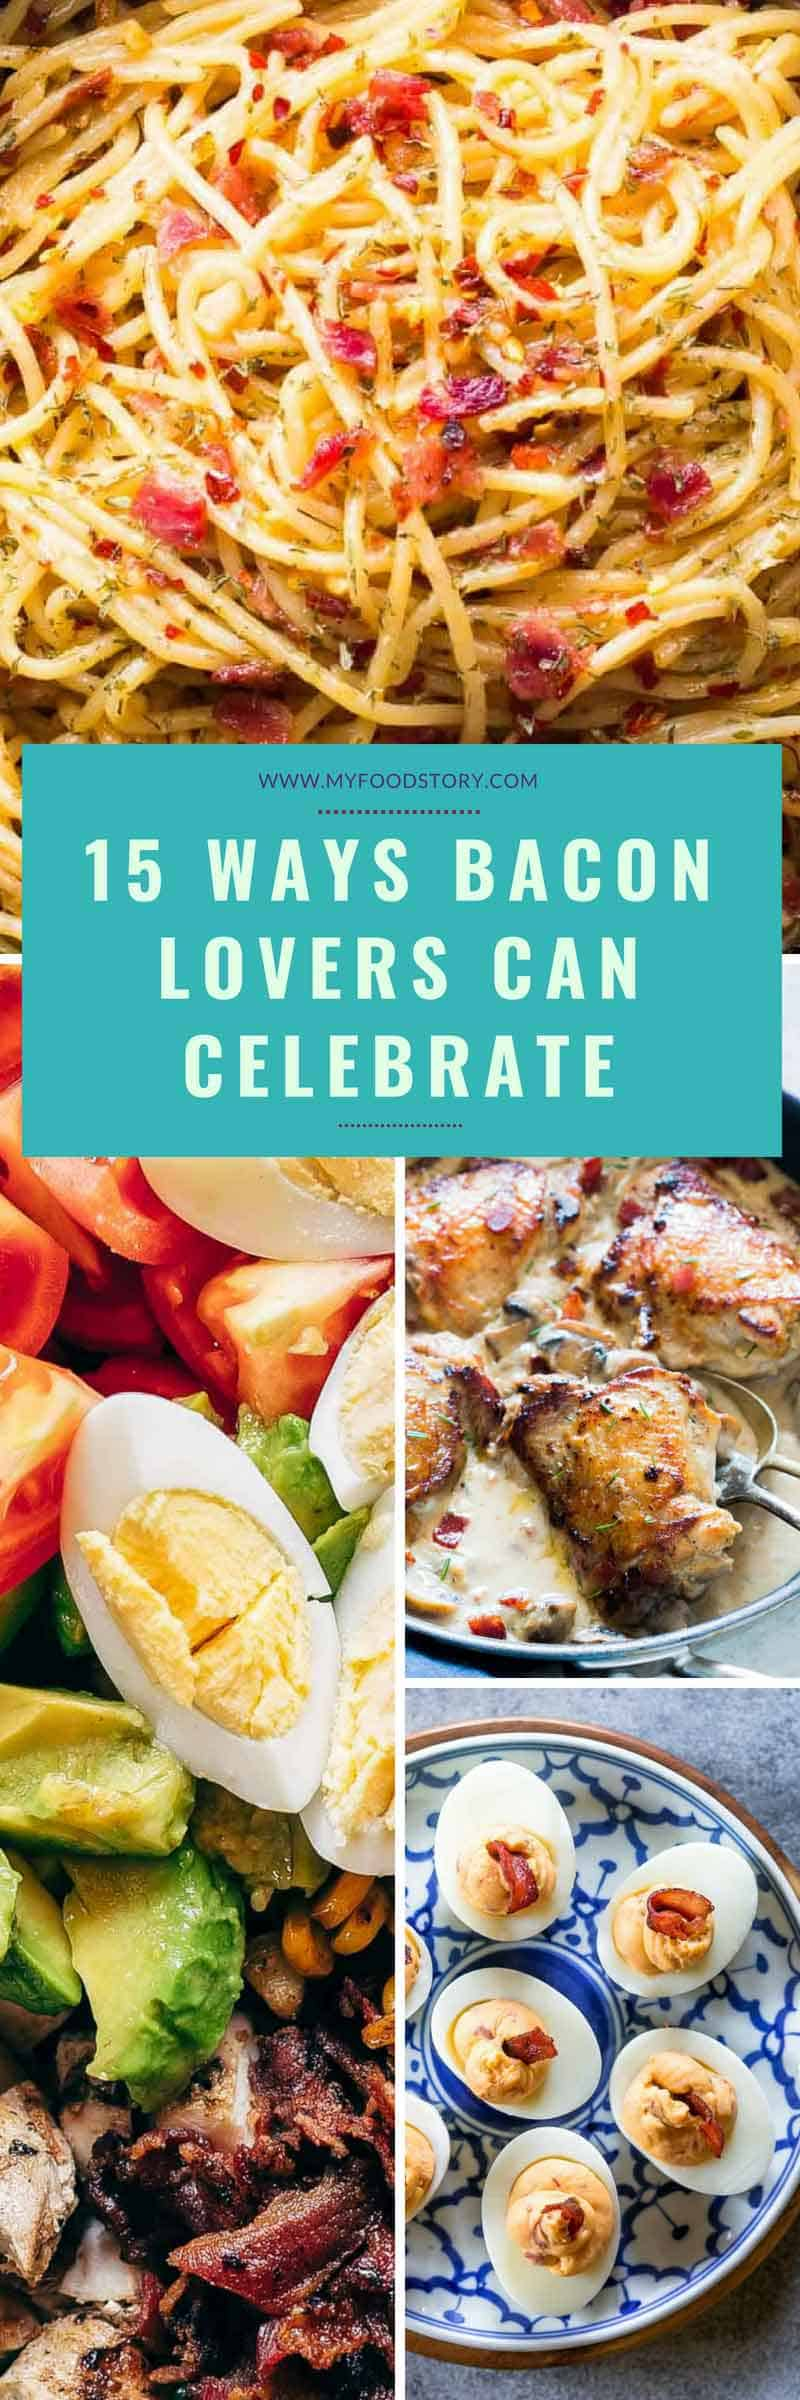 15 Bacon Recipes that will give you reason to celebrate!